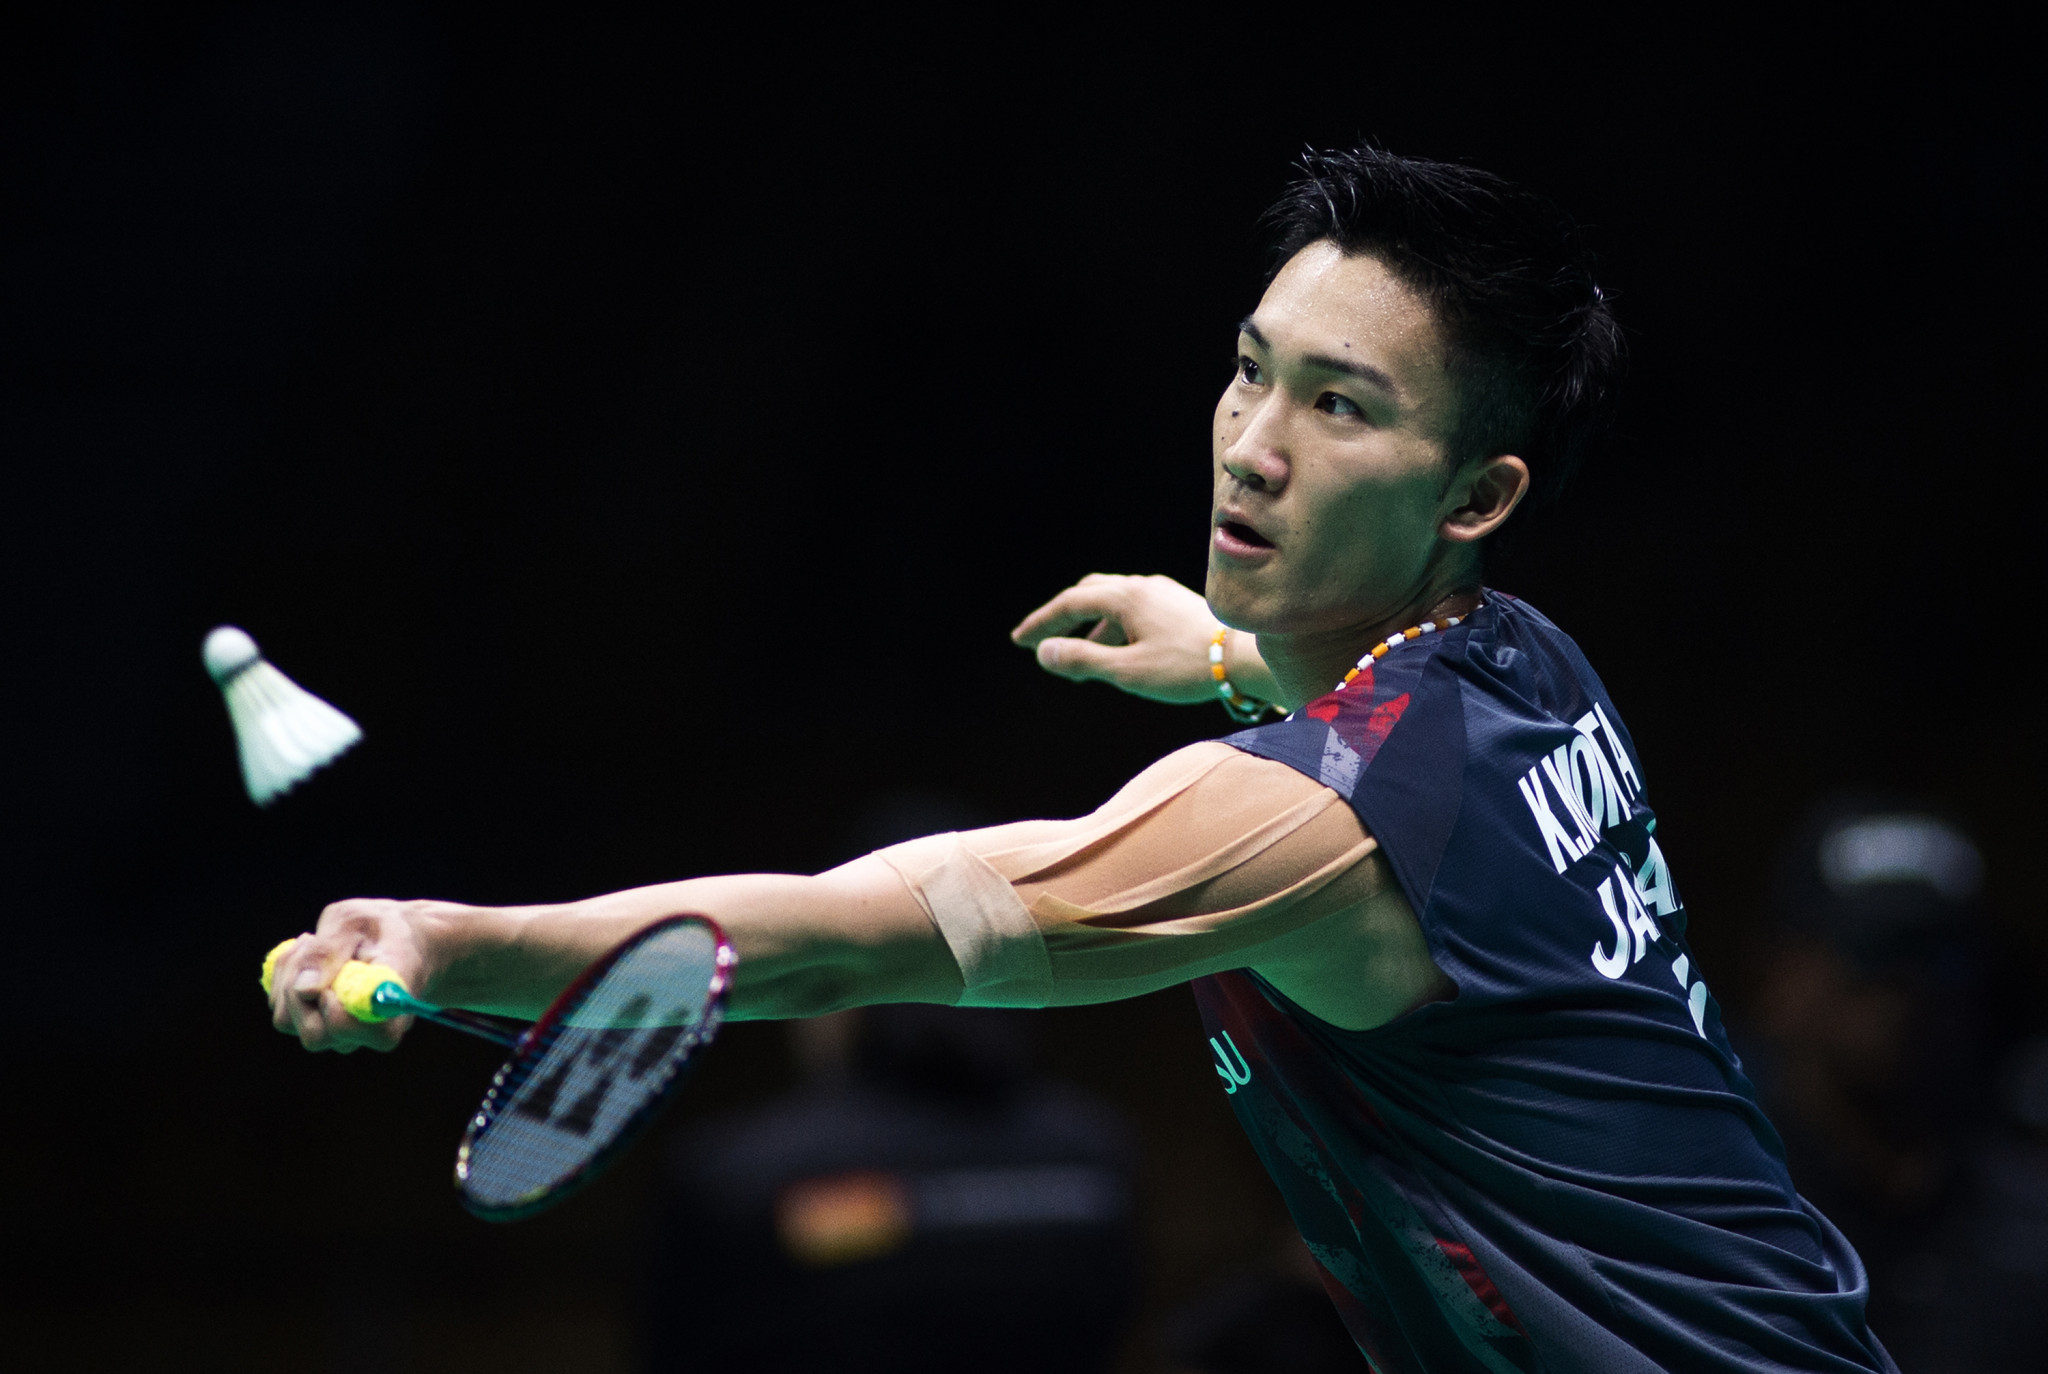 Japan's Kento Momota has moved to within one win of his maiden continental title after beating Malaysia's Lee Chong Wei at the Badminton Asia Championships ©Getty Images